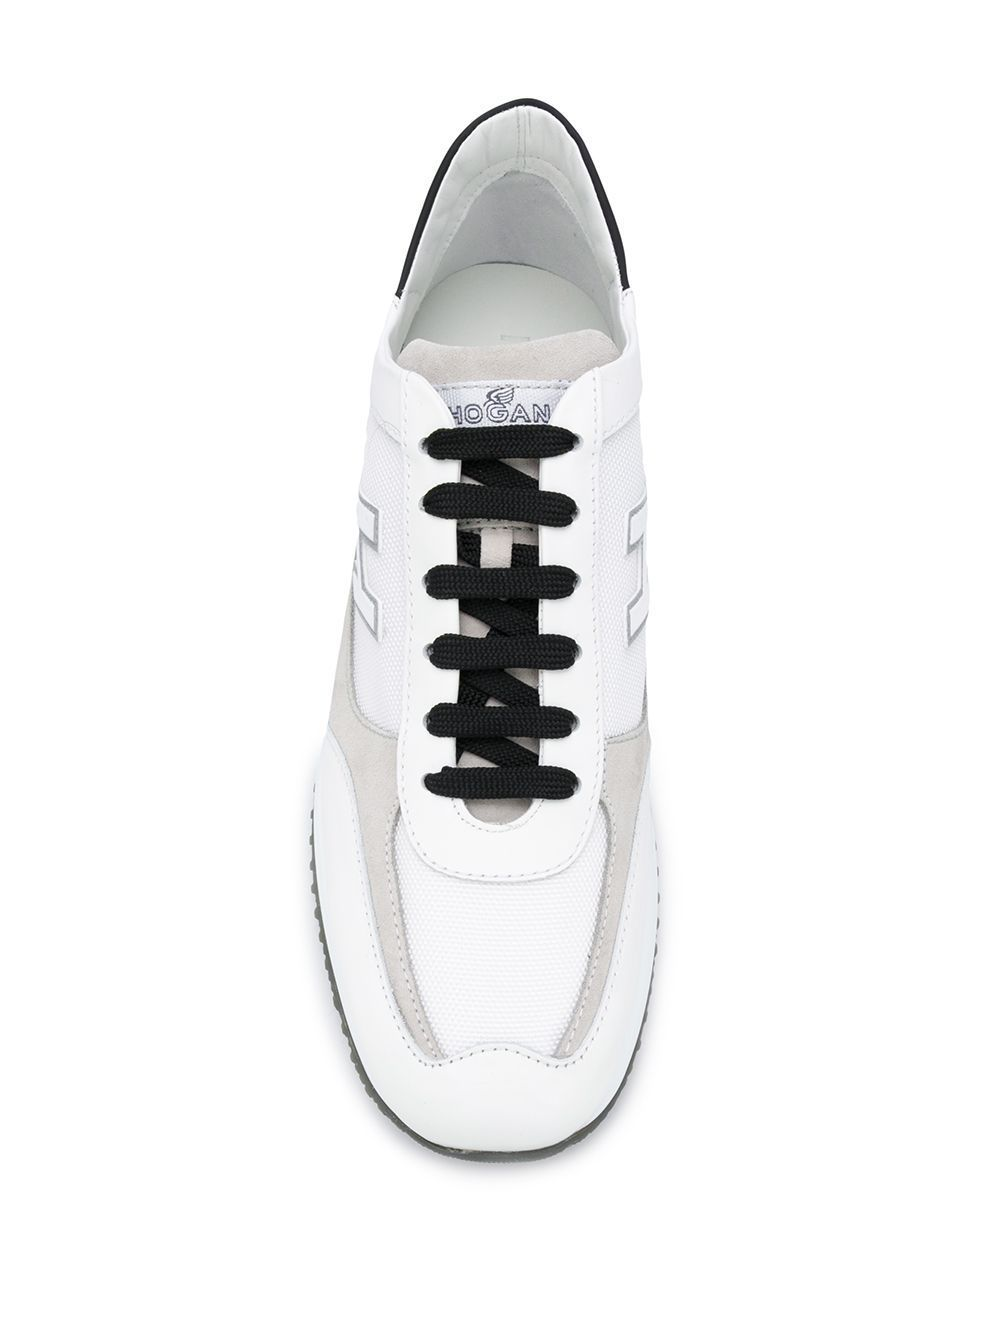 HOGAN MEN'S HXM00N0Q102N7150C4 WHITE LEATHER SNEAKERS